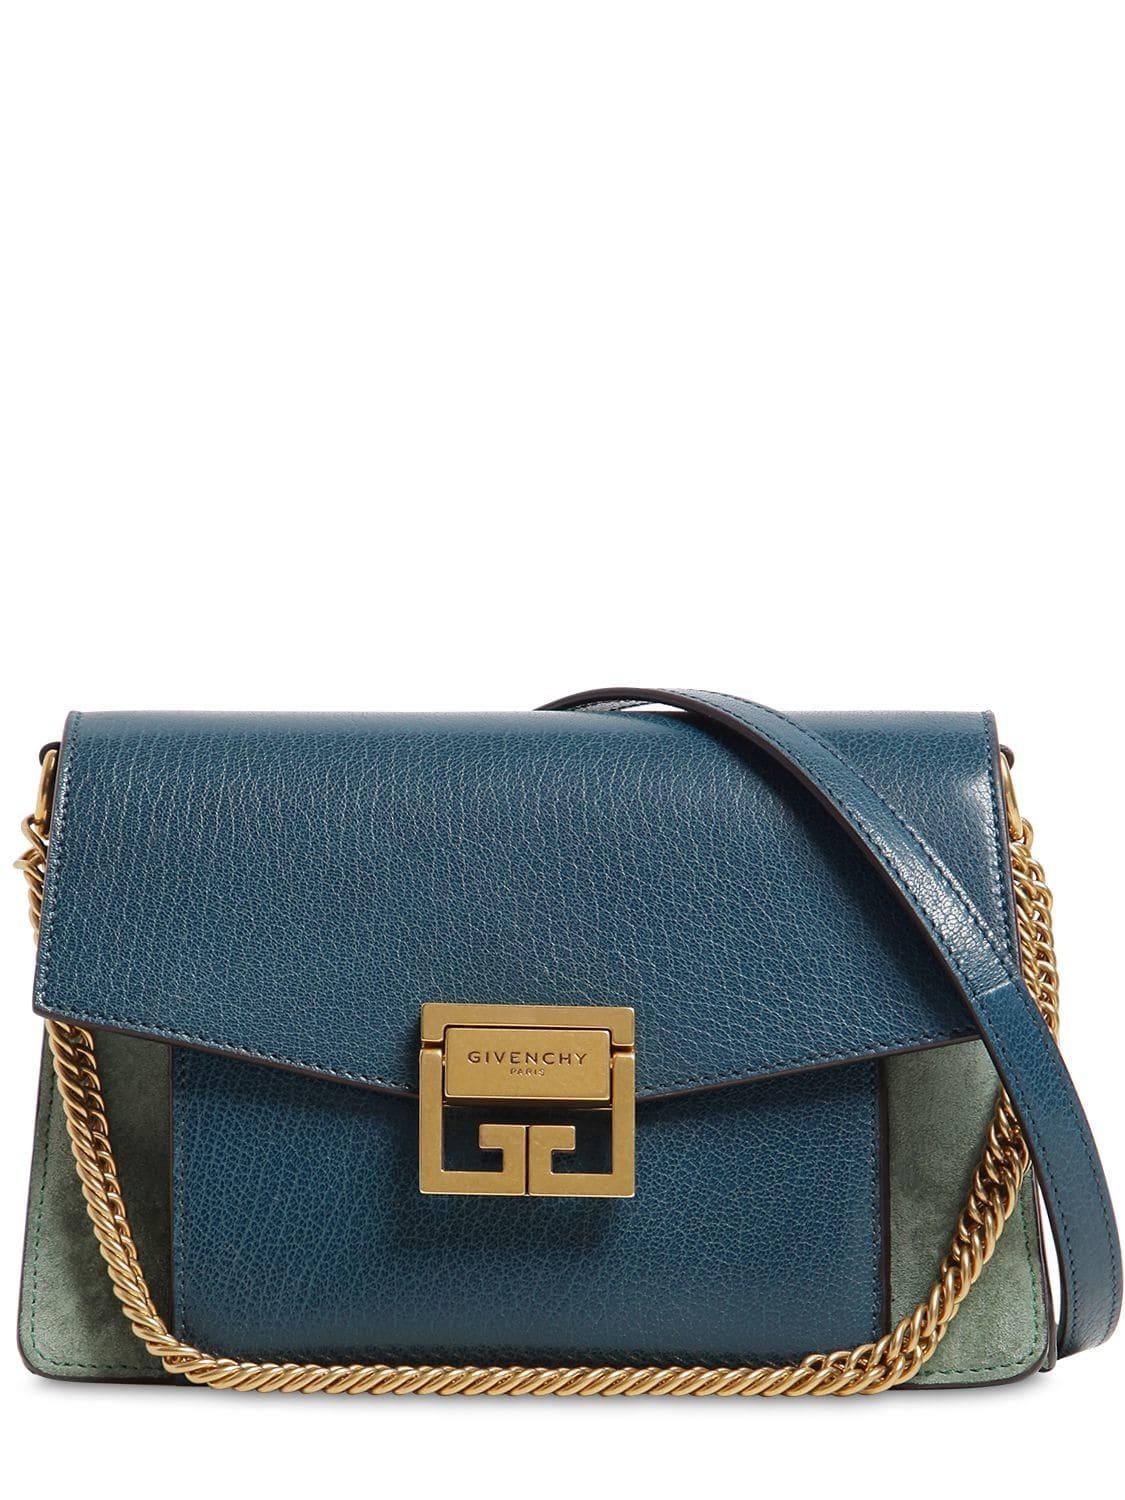 d61077152c Lyst - Givenchy Gv3 Small Swede And Leather Shoulder Bag in Blue